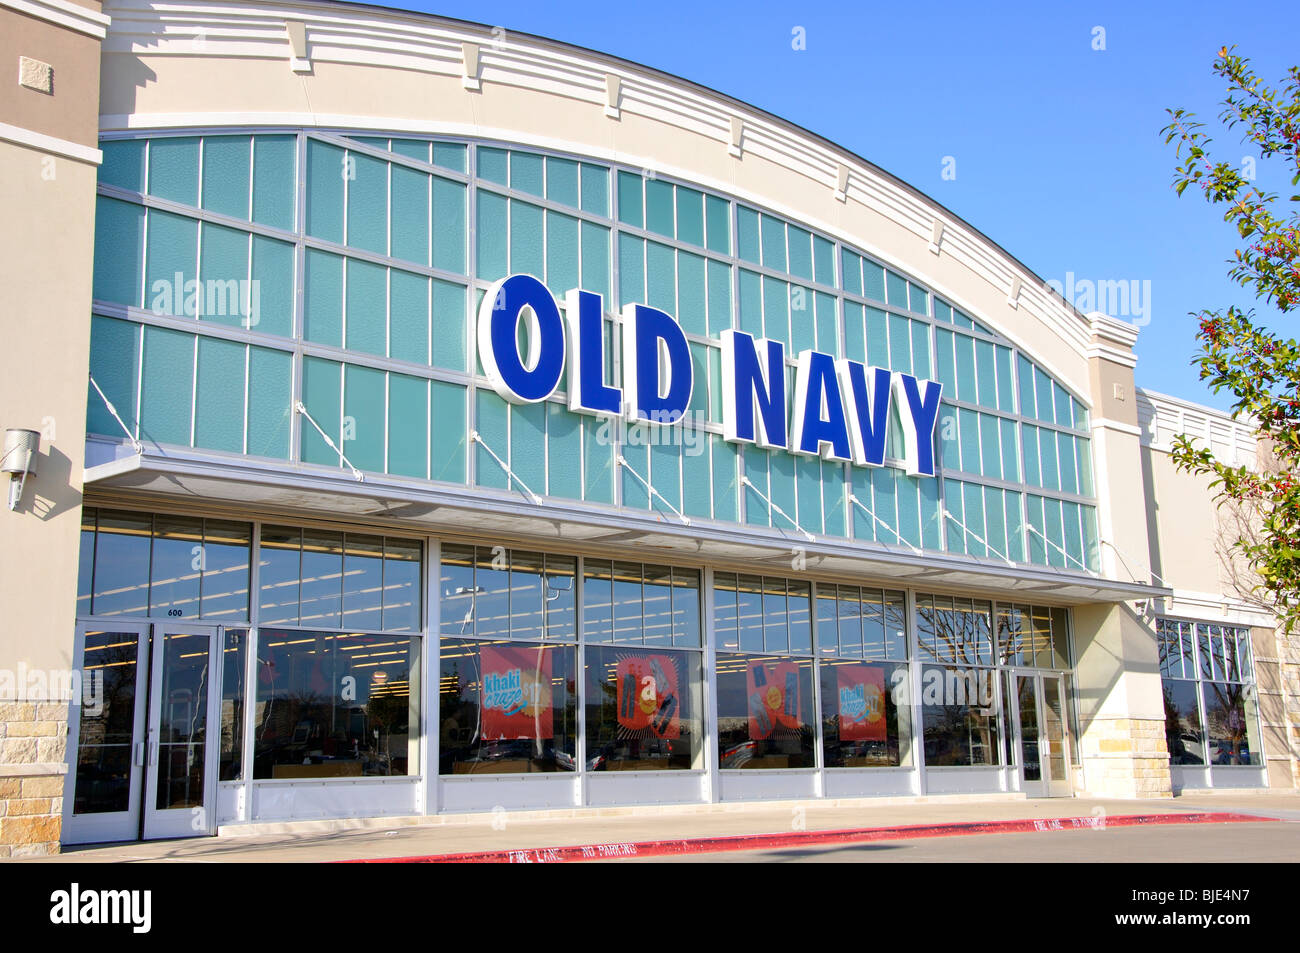 Old Navy coupons can be entered during the payment step of checkout. Look for the coupon box below your payment information. Note that some Old Navy coupons can be combined on the same order for maximum savings, such as percent-off codes and free shipping offers.